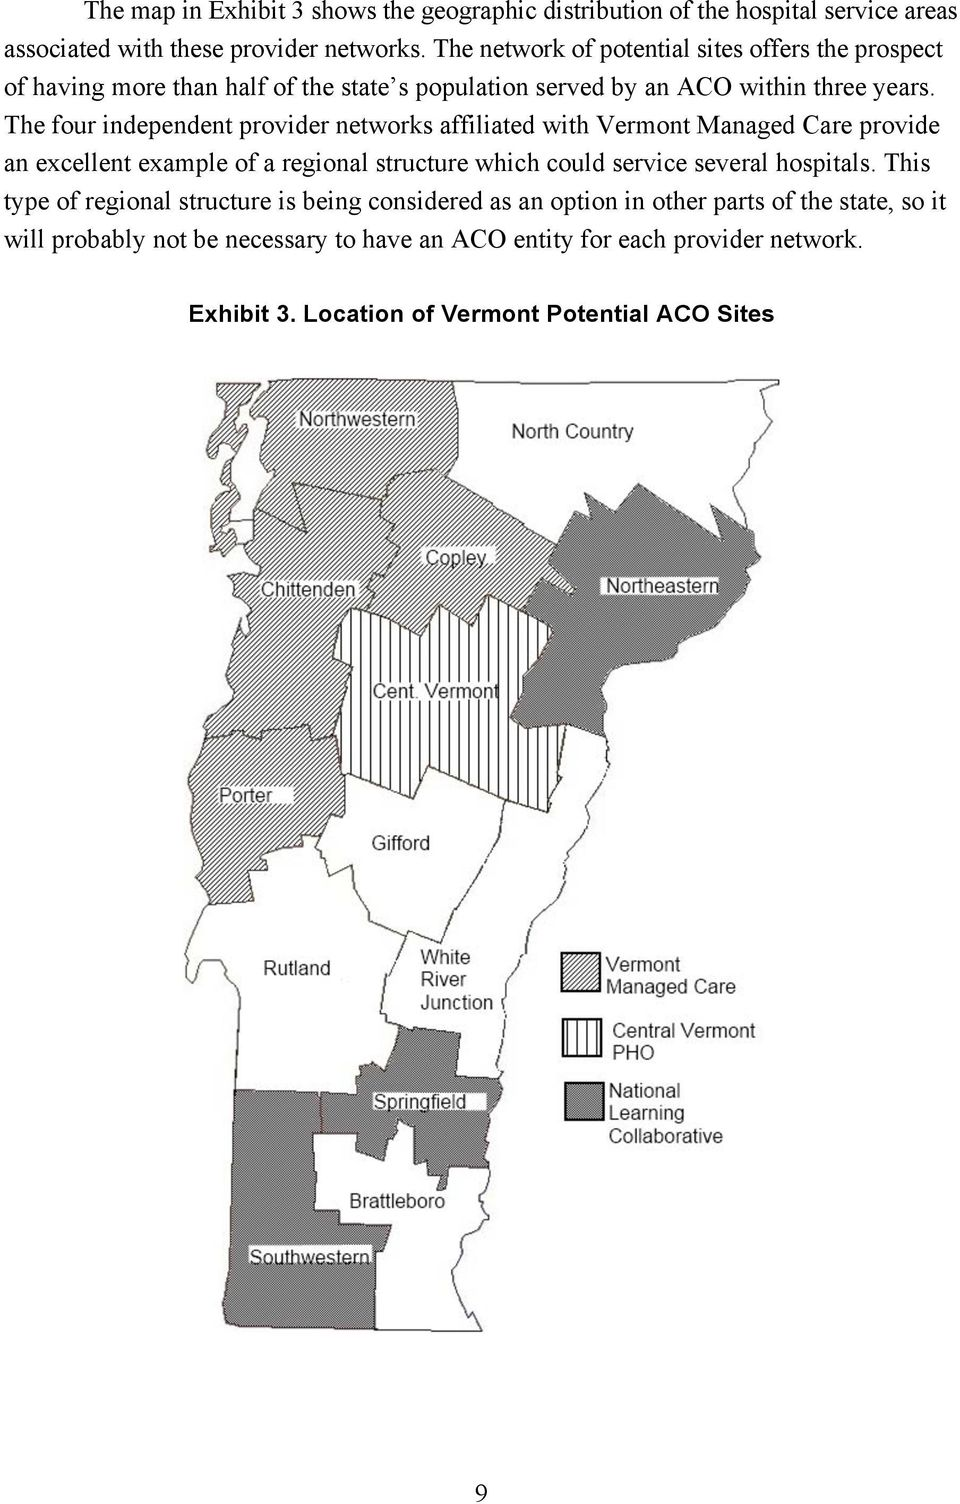 The four independent provider networks affiliated with Vermont Managed Care provide an excellent example of a regional structure which could service several hospitals.